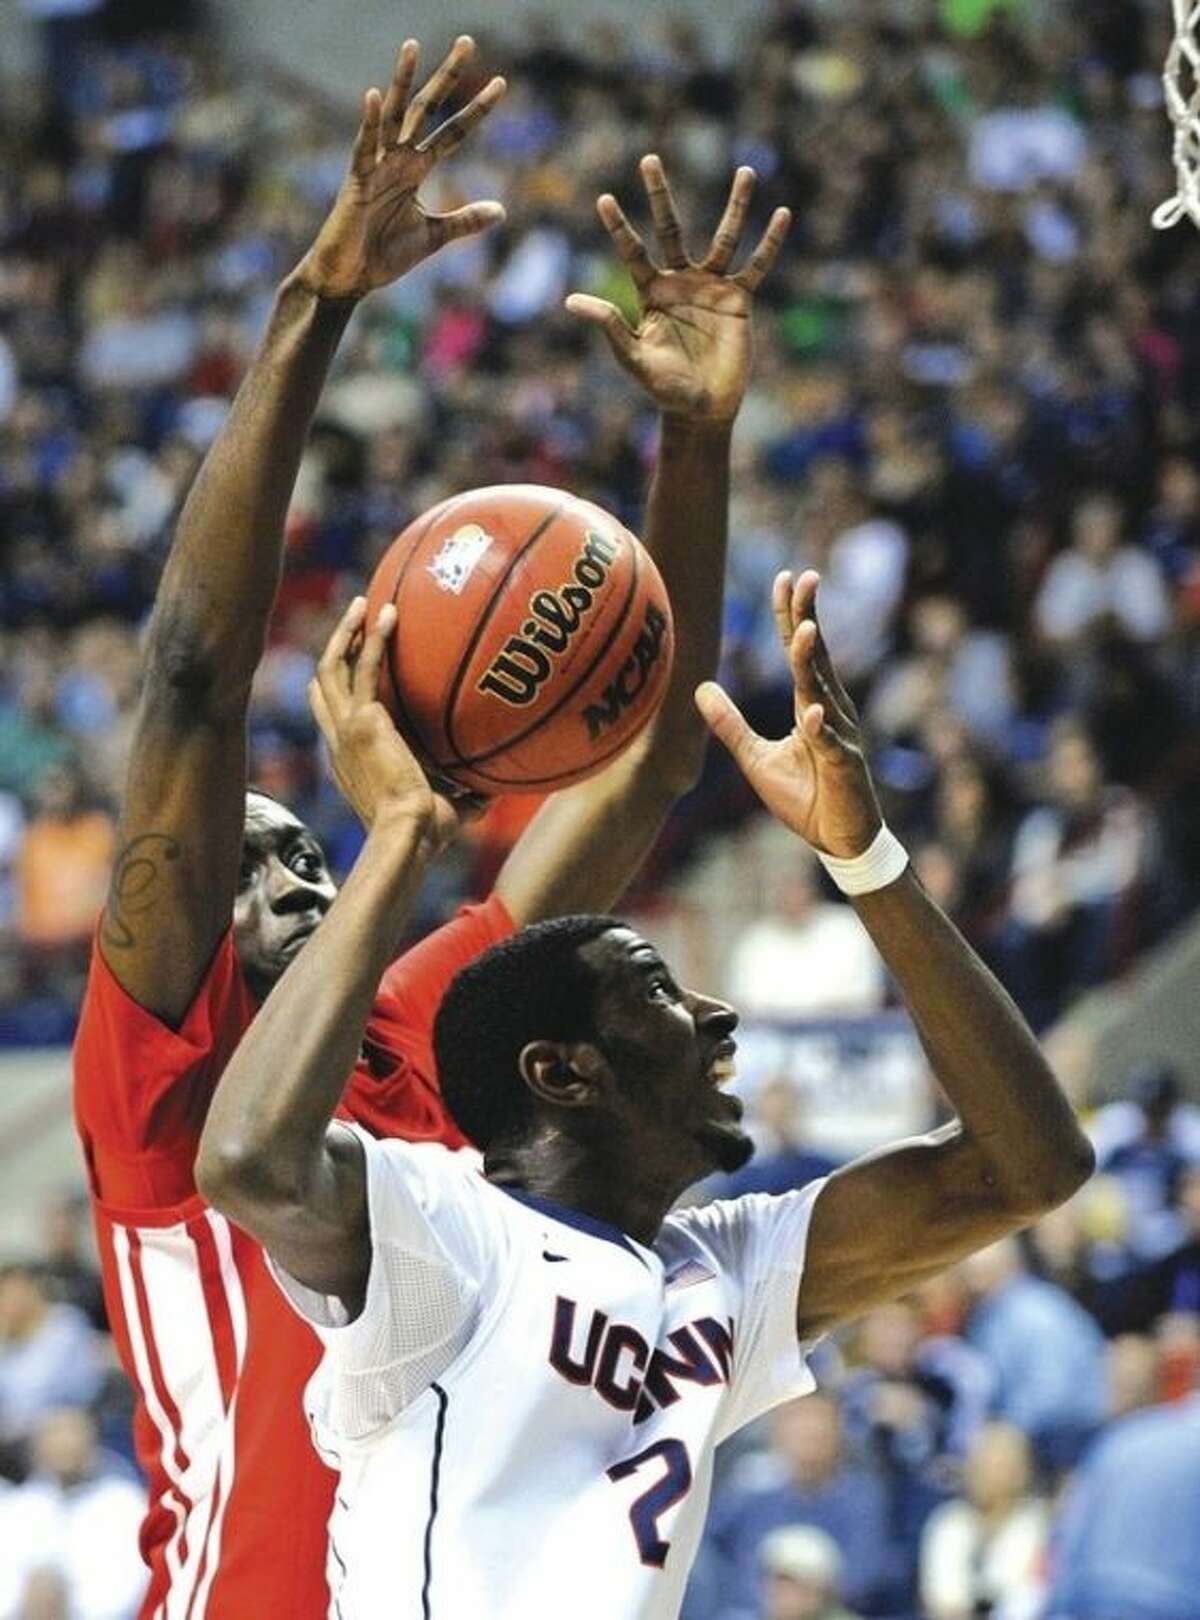 AP photo UConn's DeAndre Daniels (2) drives past Boston University's Malik Thomas during Sunday's game at Gampel Pavilion. Daniels had 24 points to lead the Huskies to a 77-60 victory in the game, part of the 2K Sports Classic.